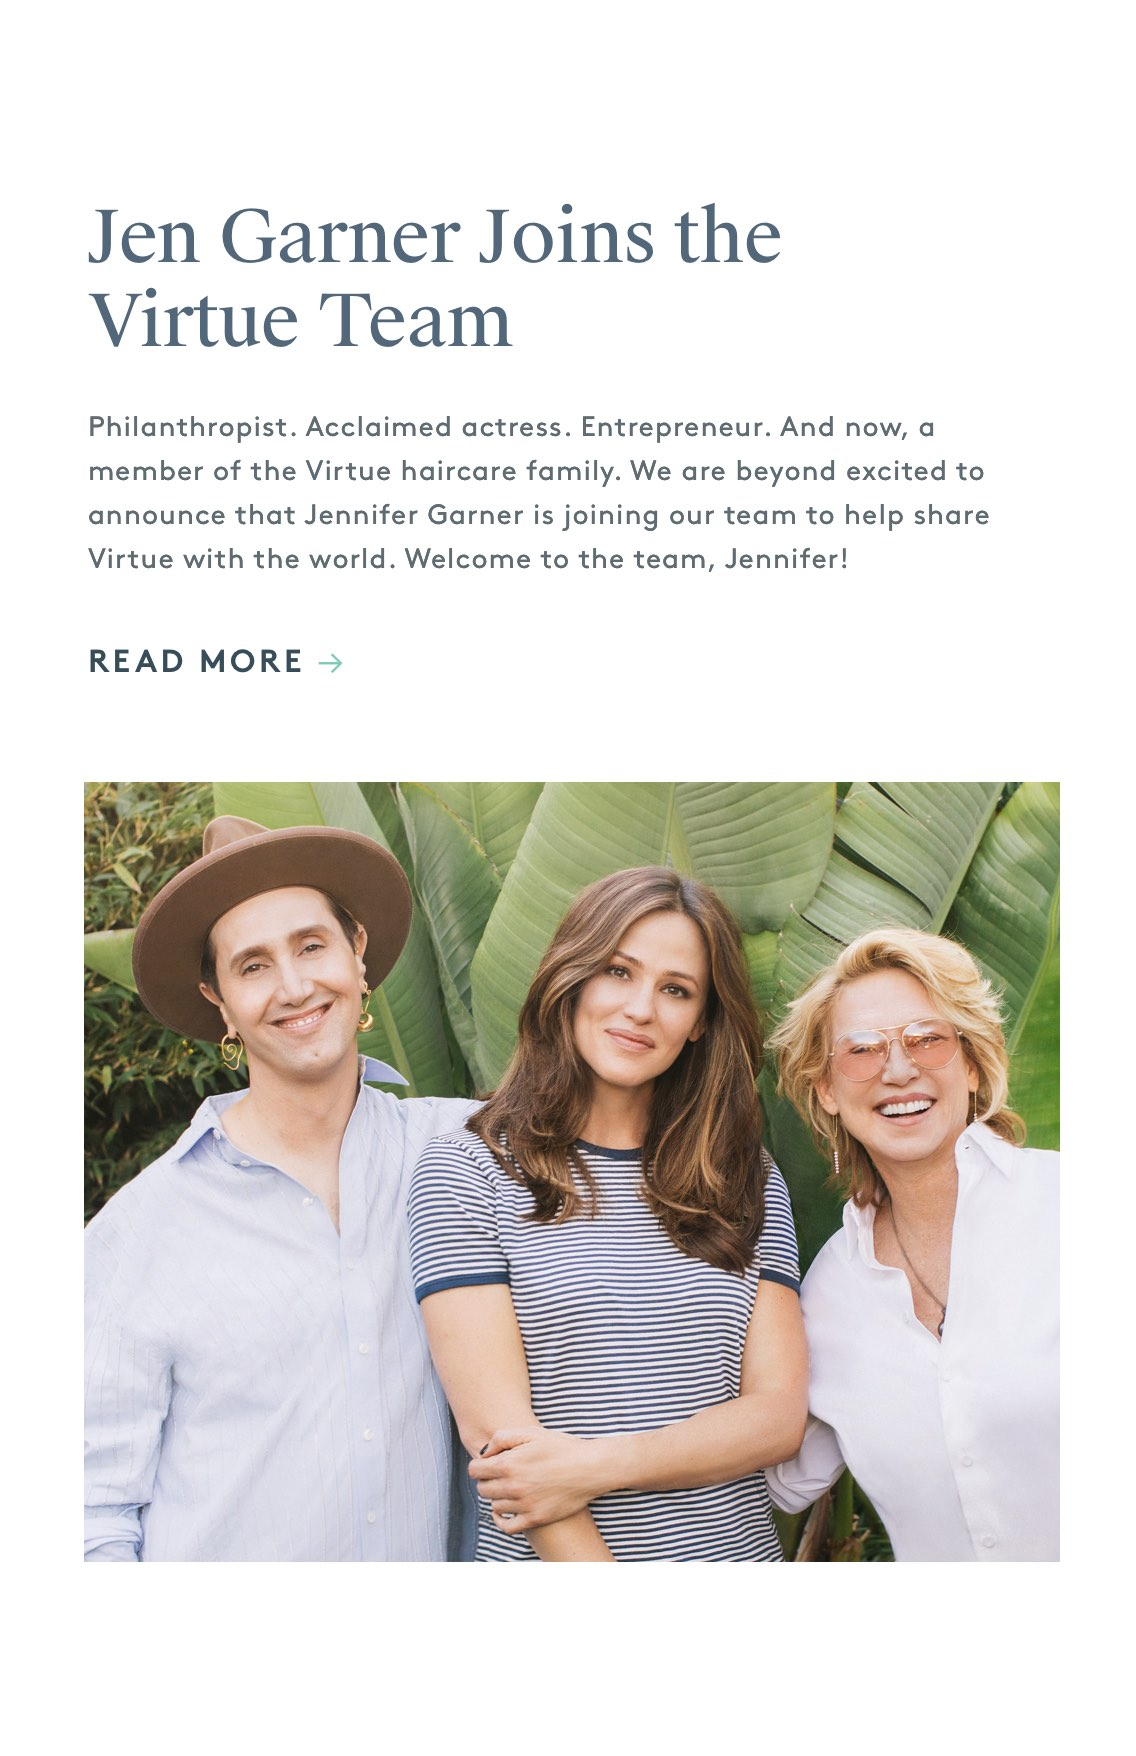 Jennifer Garner Joins the Virtue Team